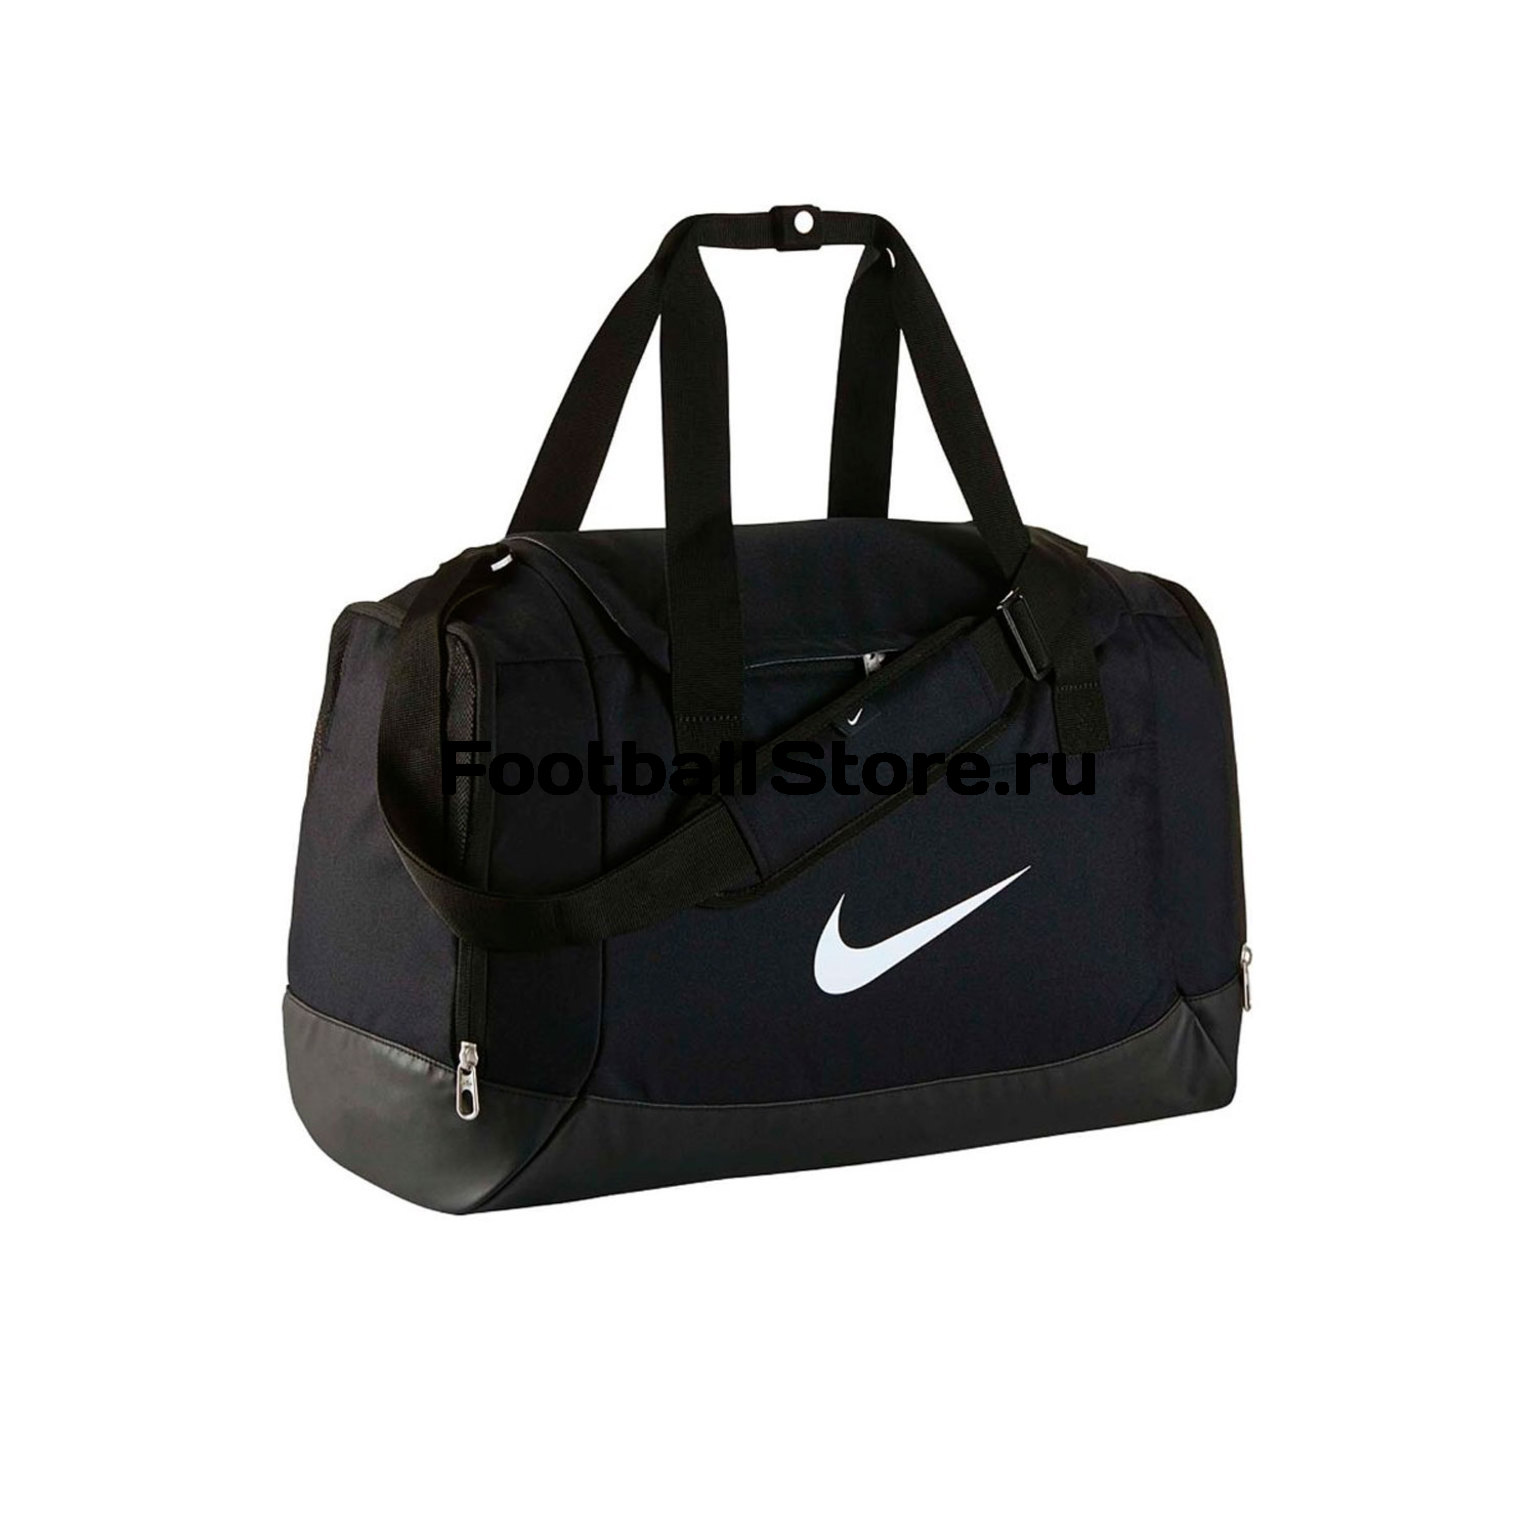 Сумки/Рюкзаки Nike Сумка Nike Club Team Swoosh Duff S BA5194-010 nike nike club team swoosh backpack